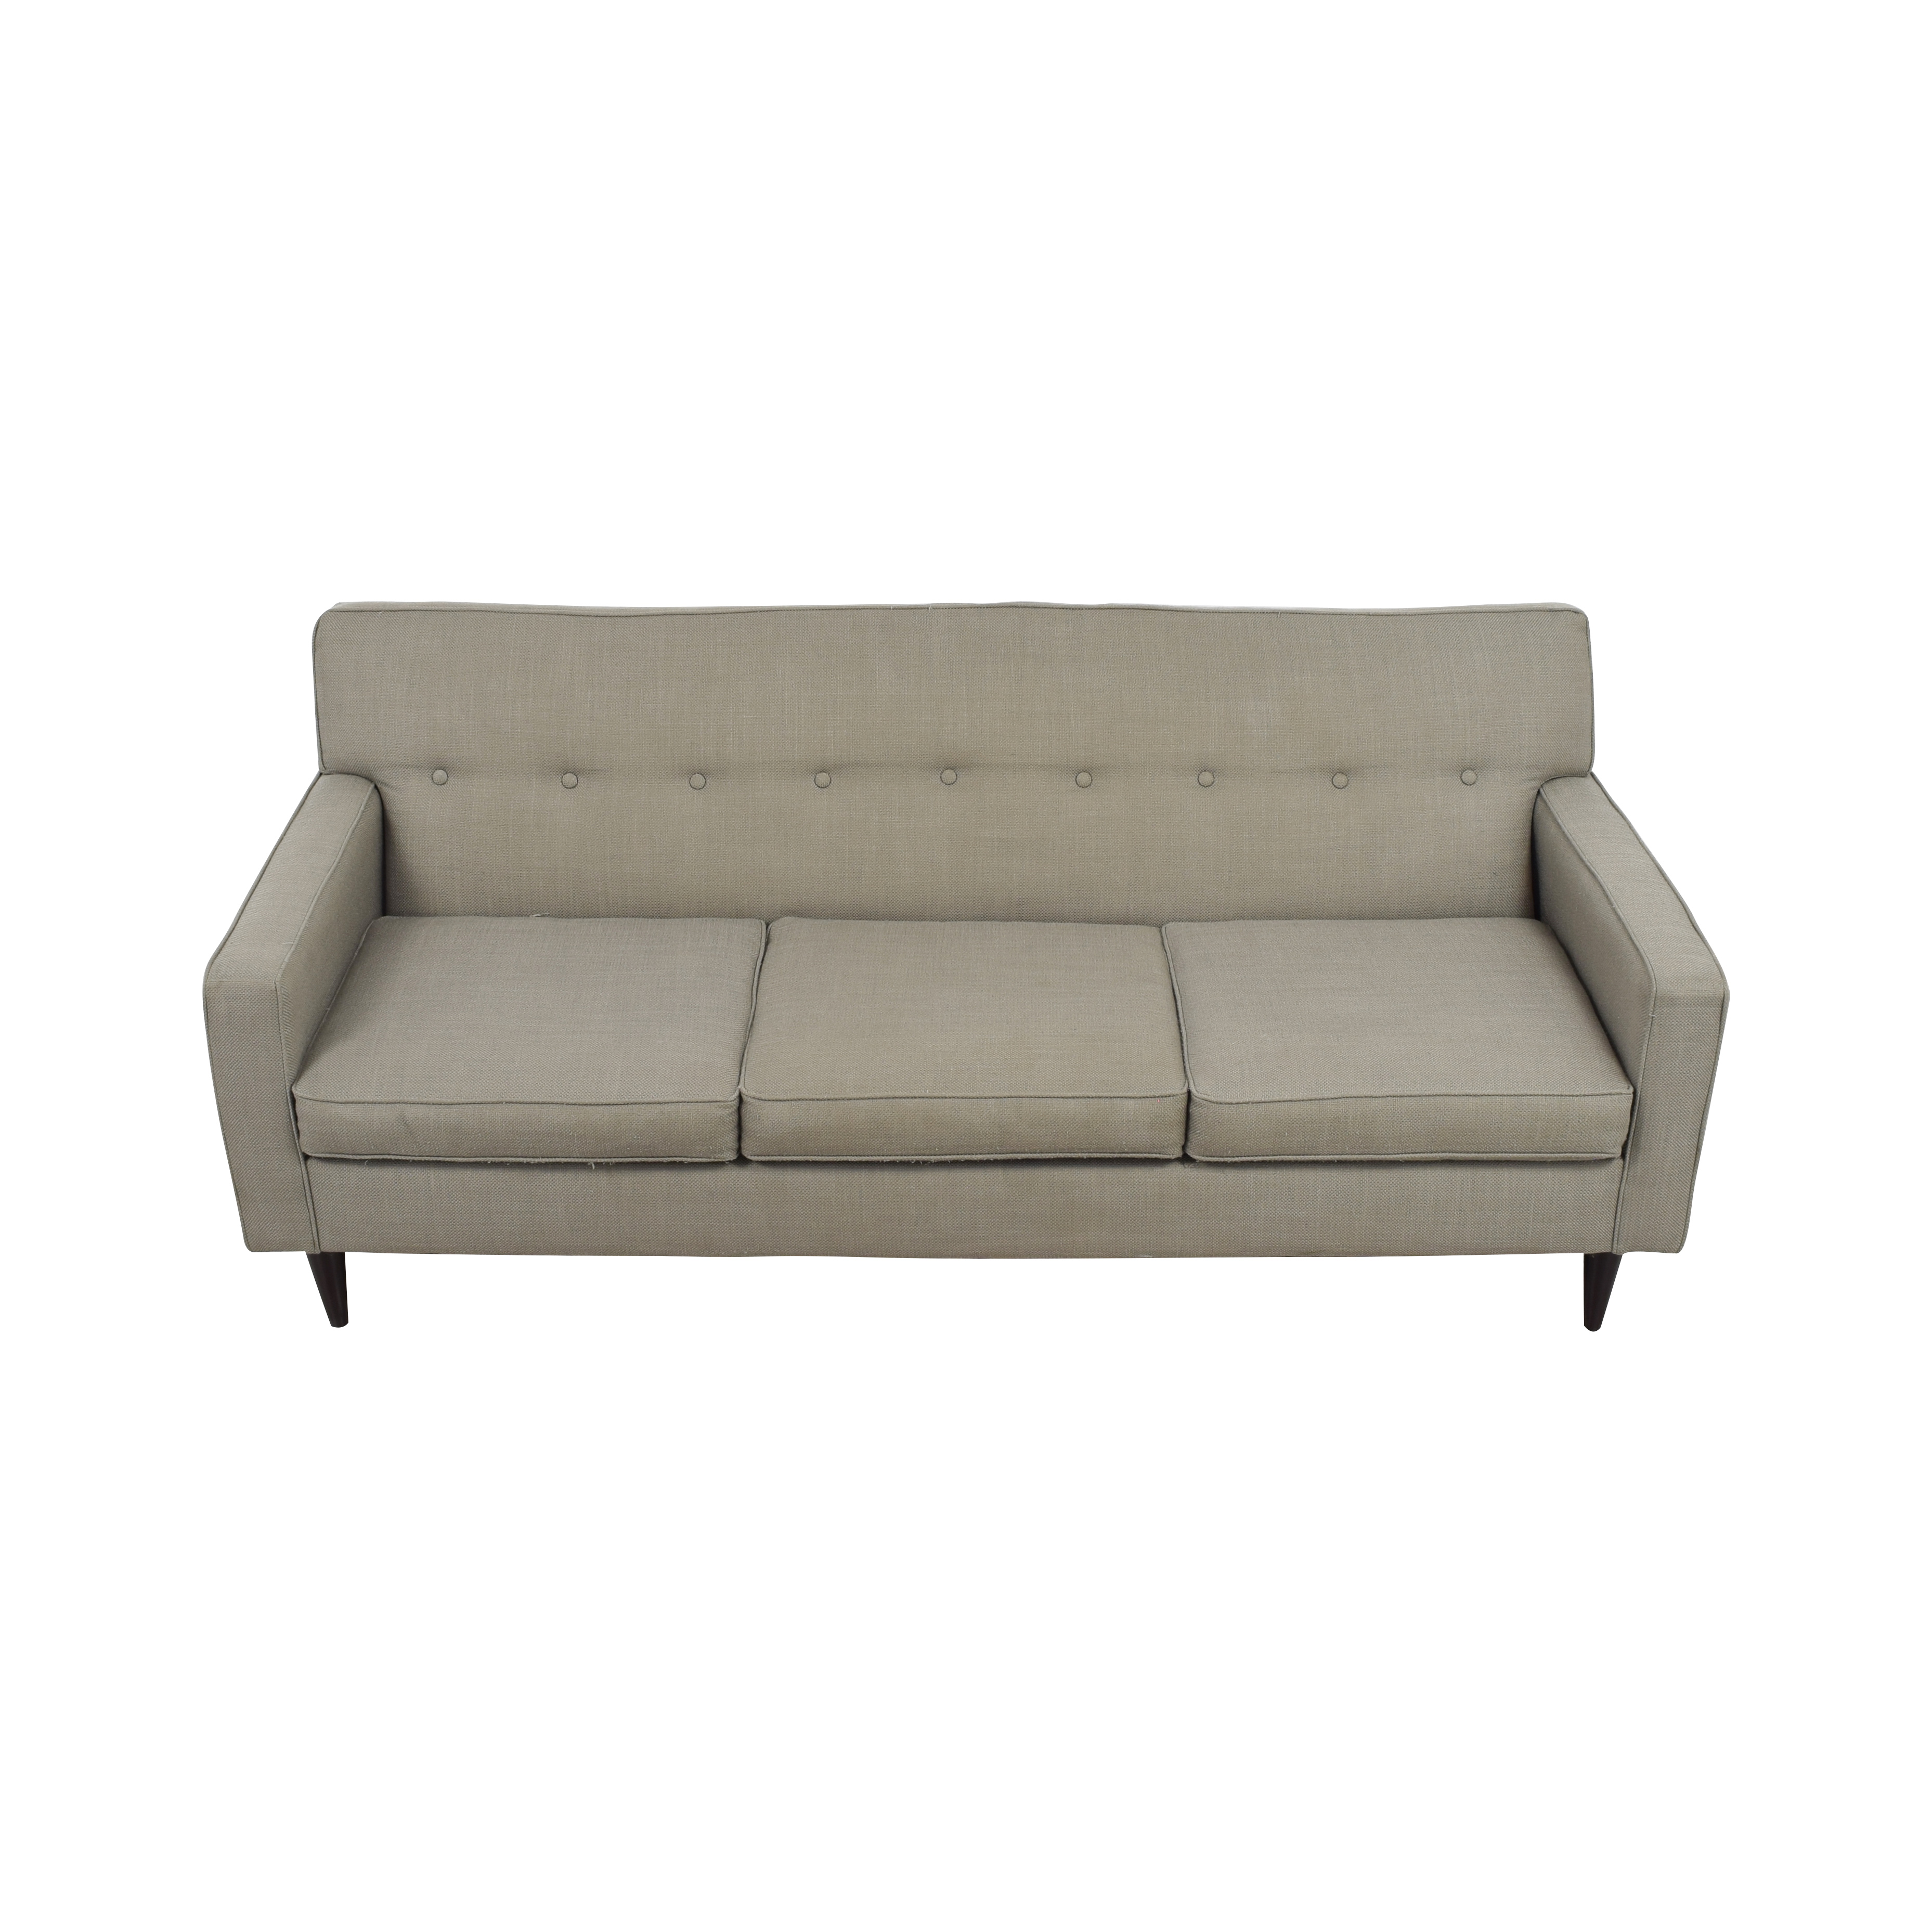 Macys Macys Grey Tufted Three-Cushion Couch second hand